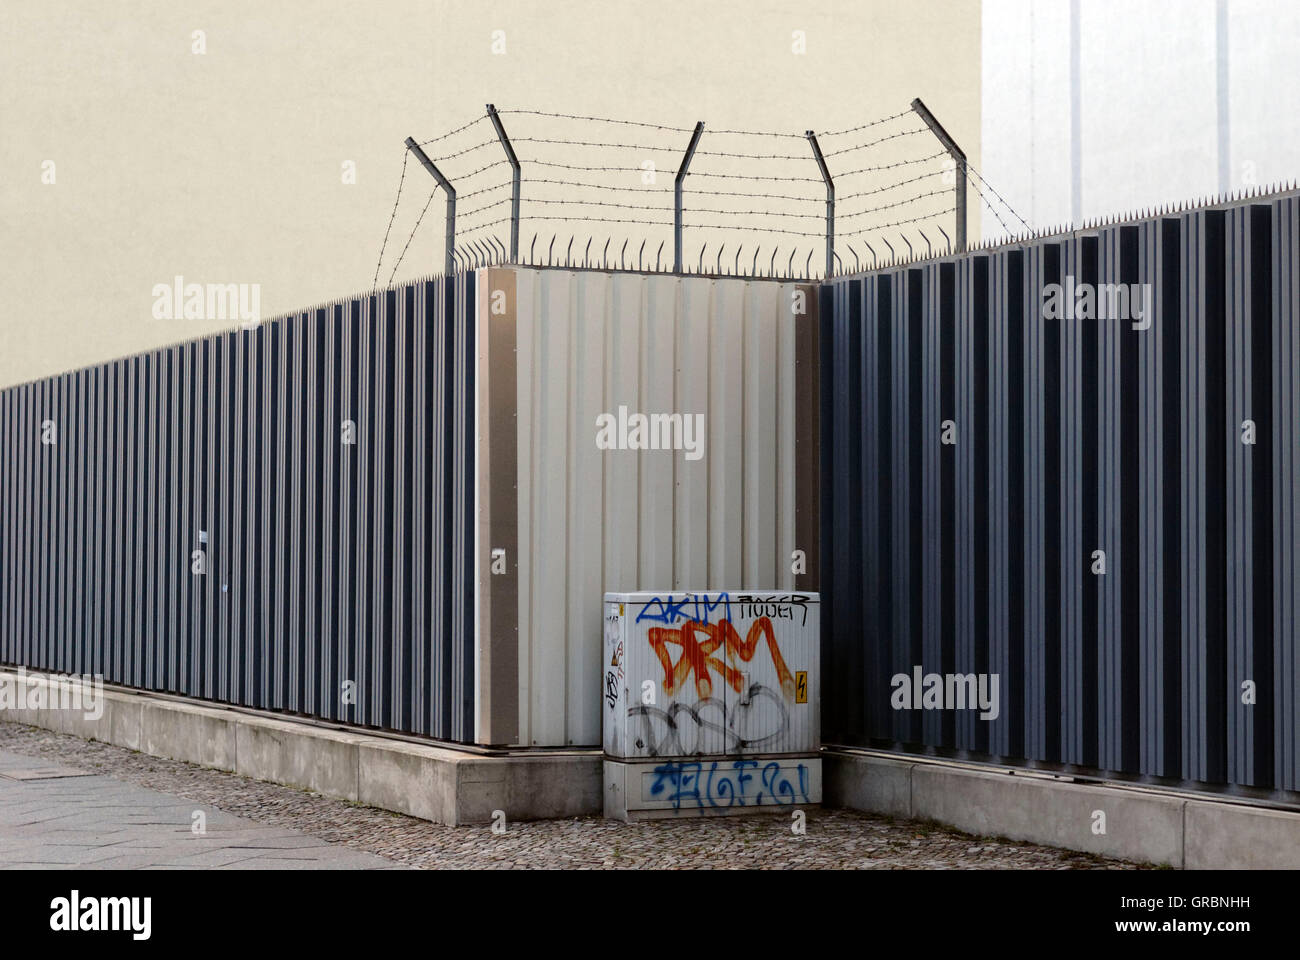 Fence With Barbed Wire On Top Stock Photo: 117657725 - Alamy